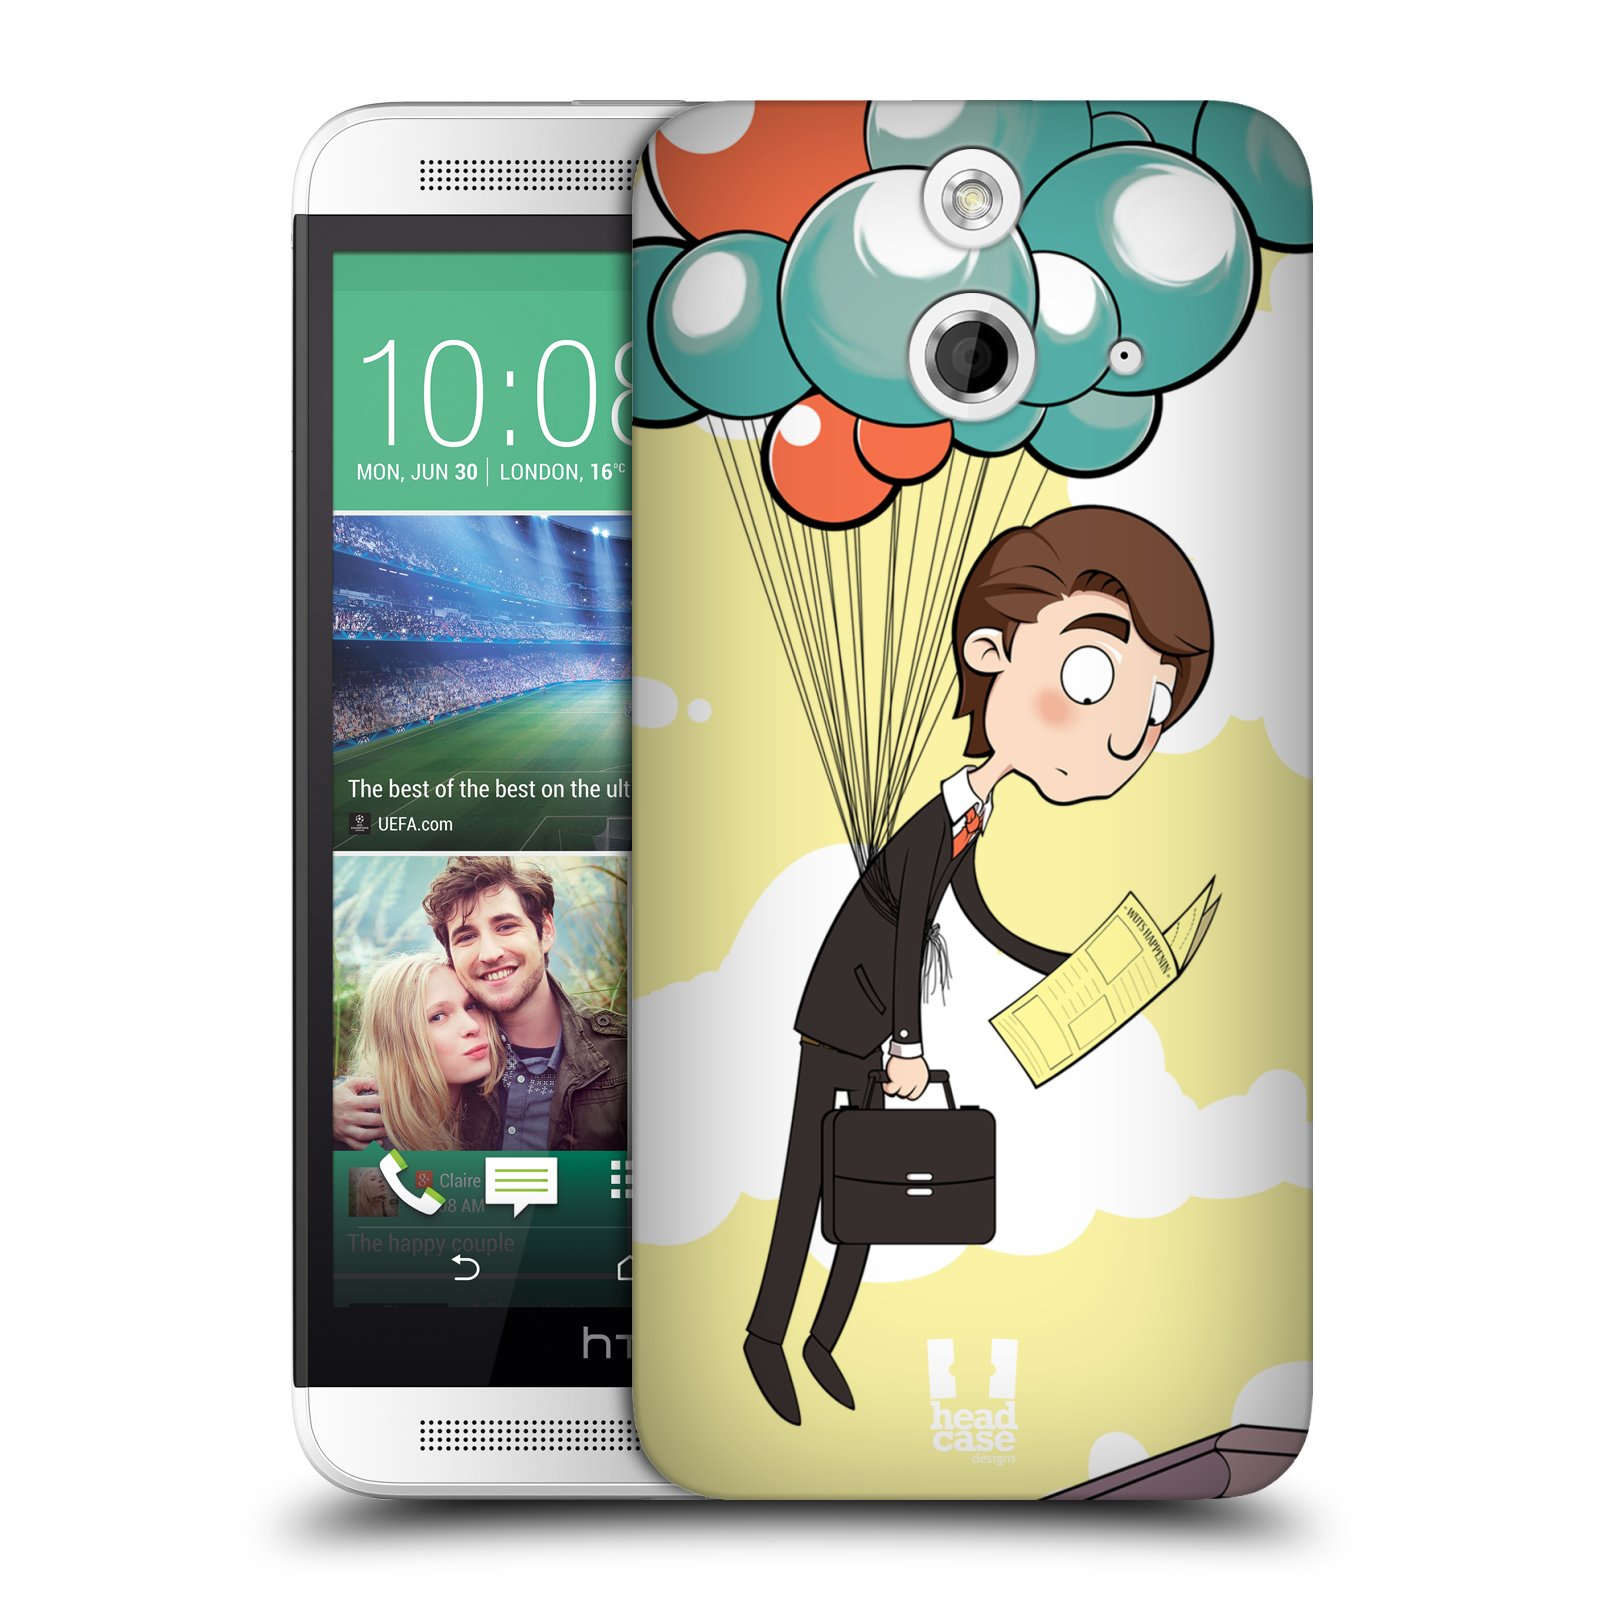 HEAD CASE DESIGNS HC MIX HARD BACK CASE FOR HTC ONE E8 DUAL SIM